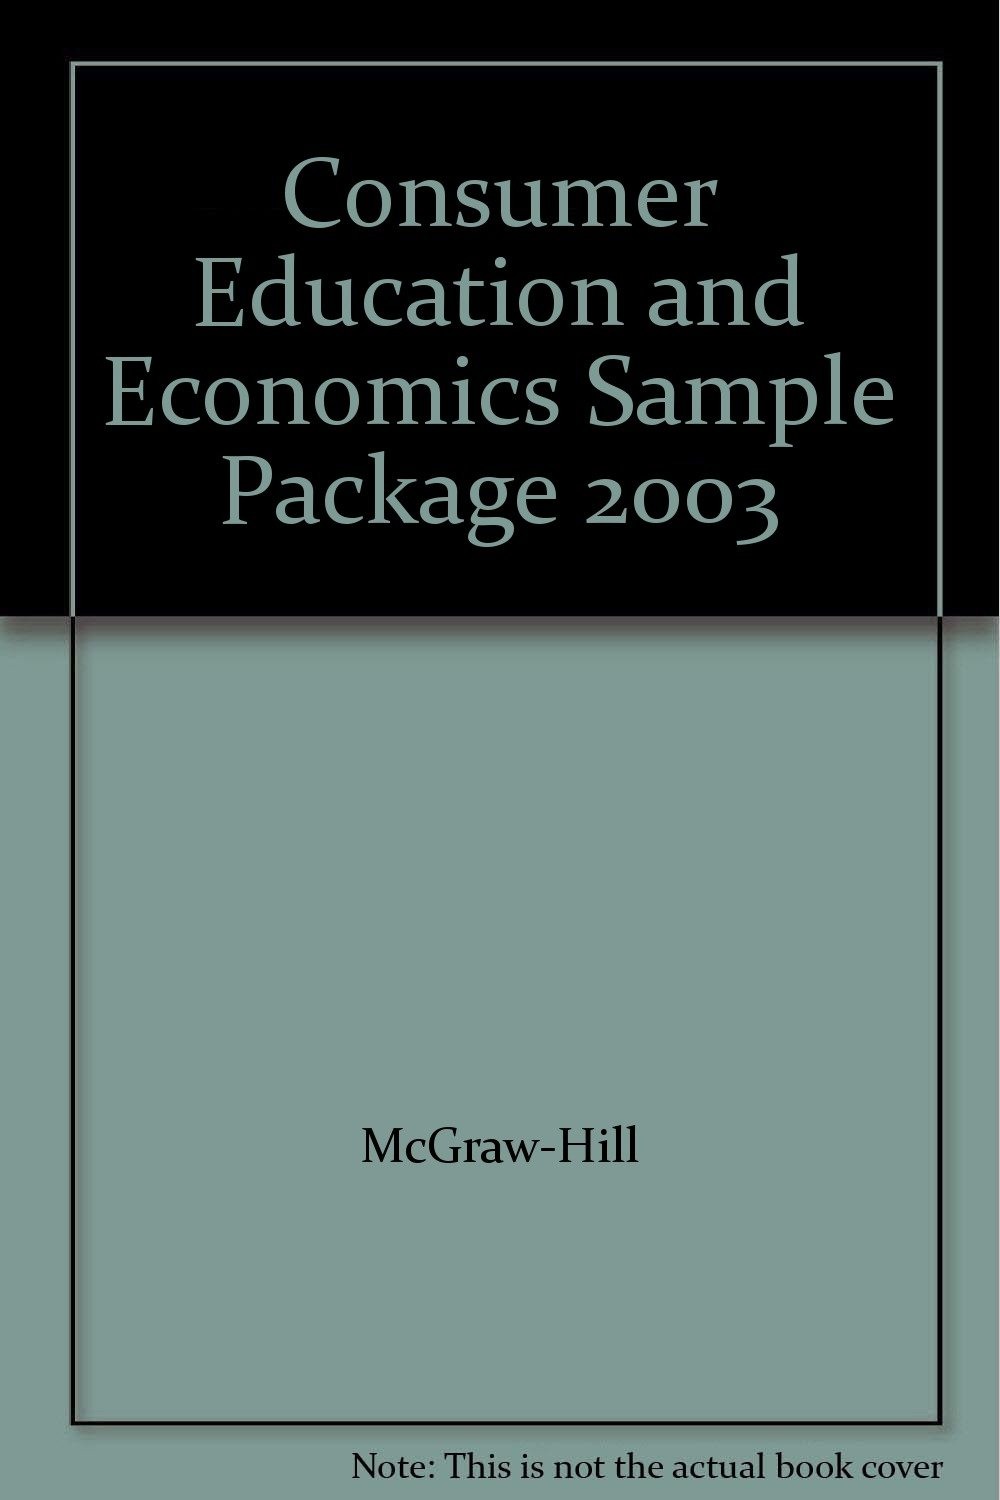 Download Consumer Education and Economics Sample Package 2003 pdf